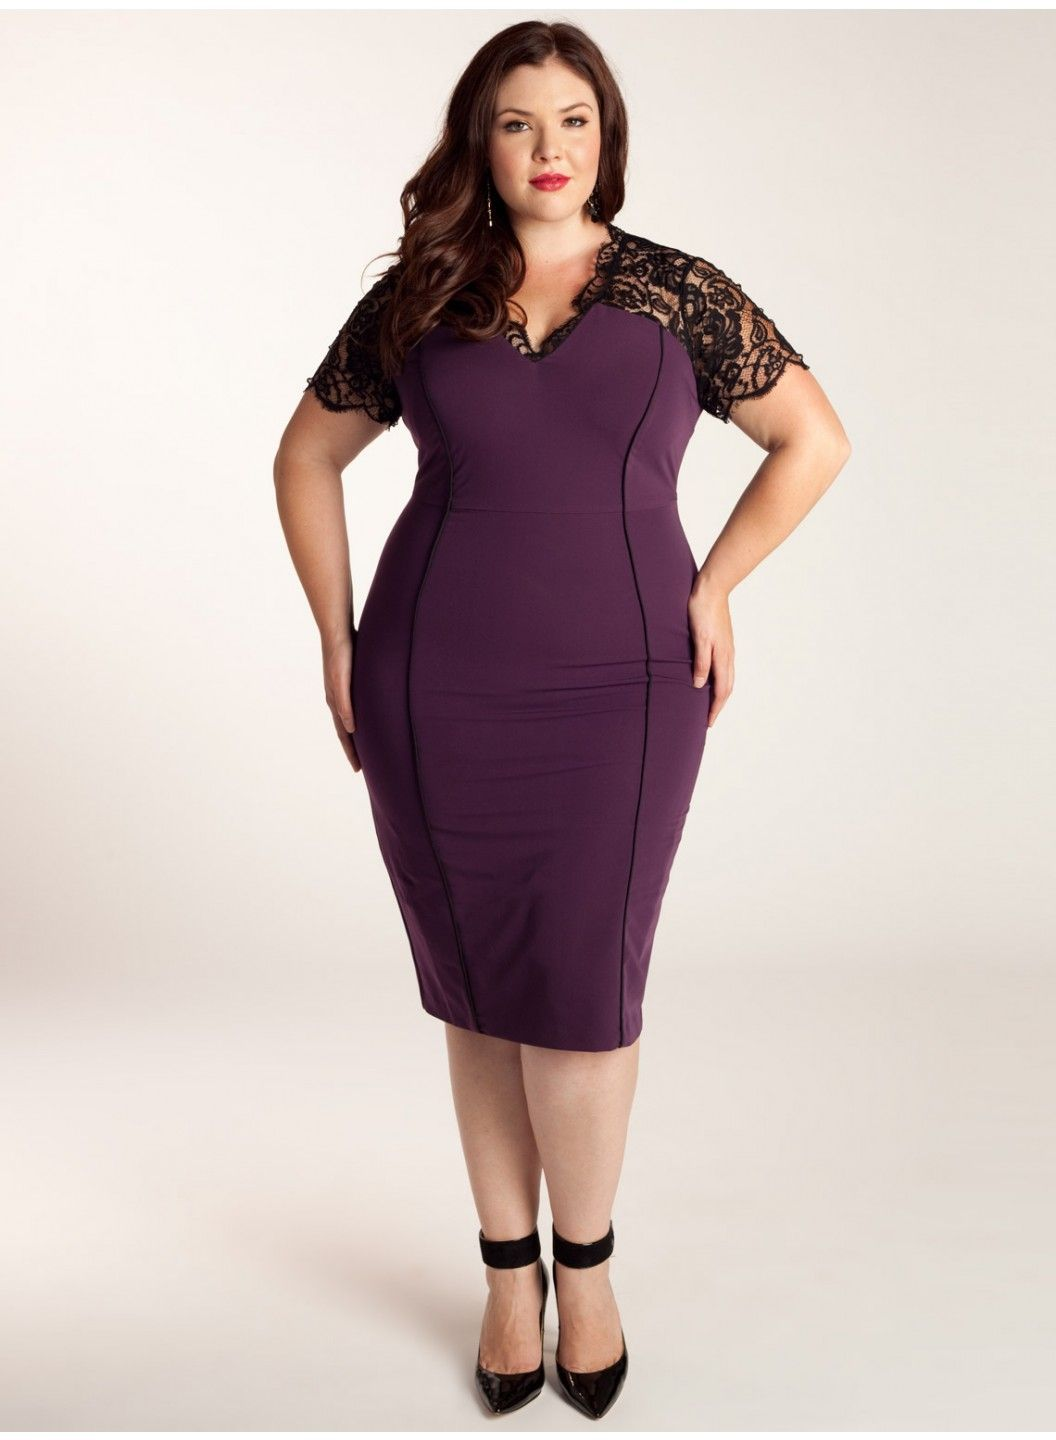 Denise Plus Size Dress in Plum | Plus size dresses, Model homes ...